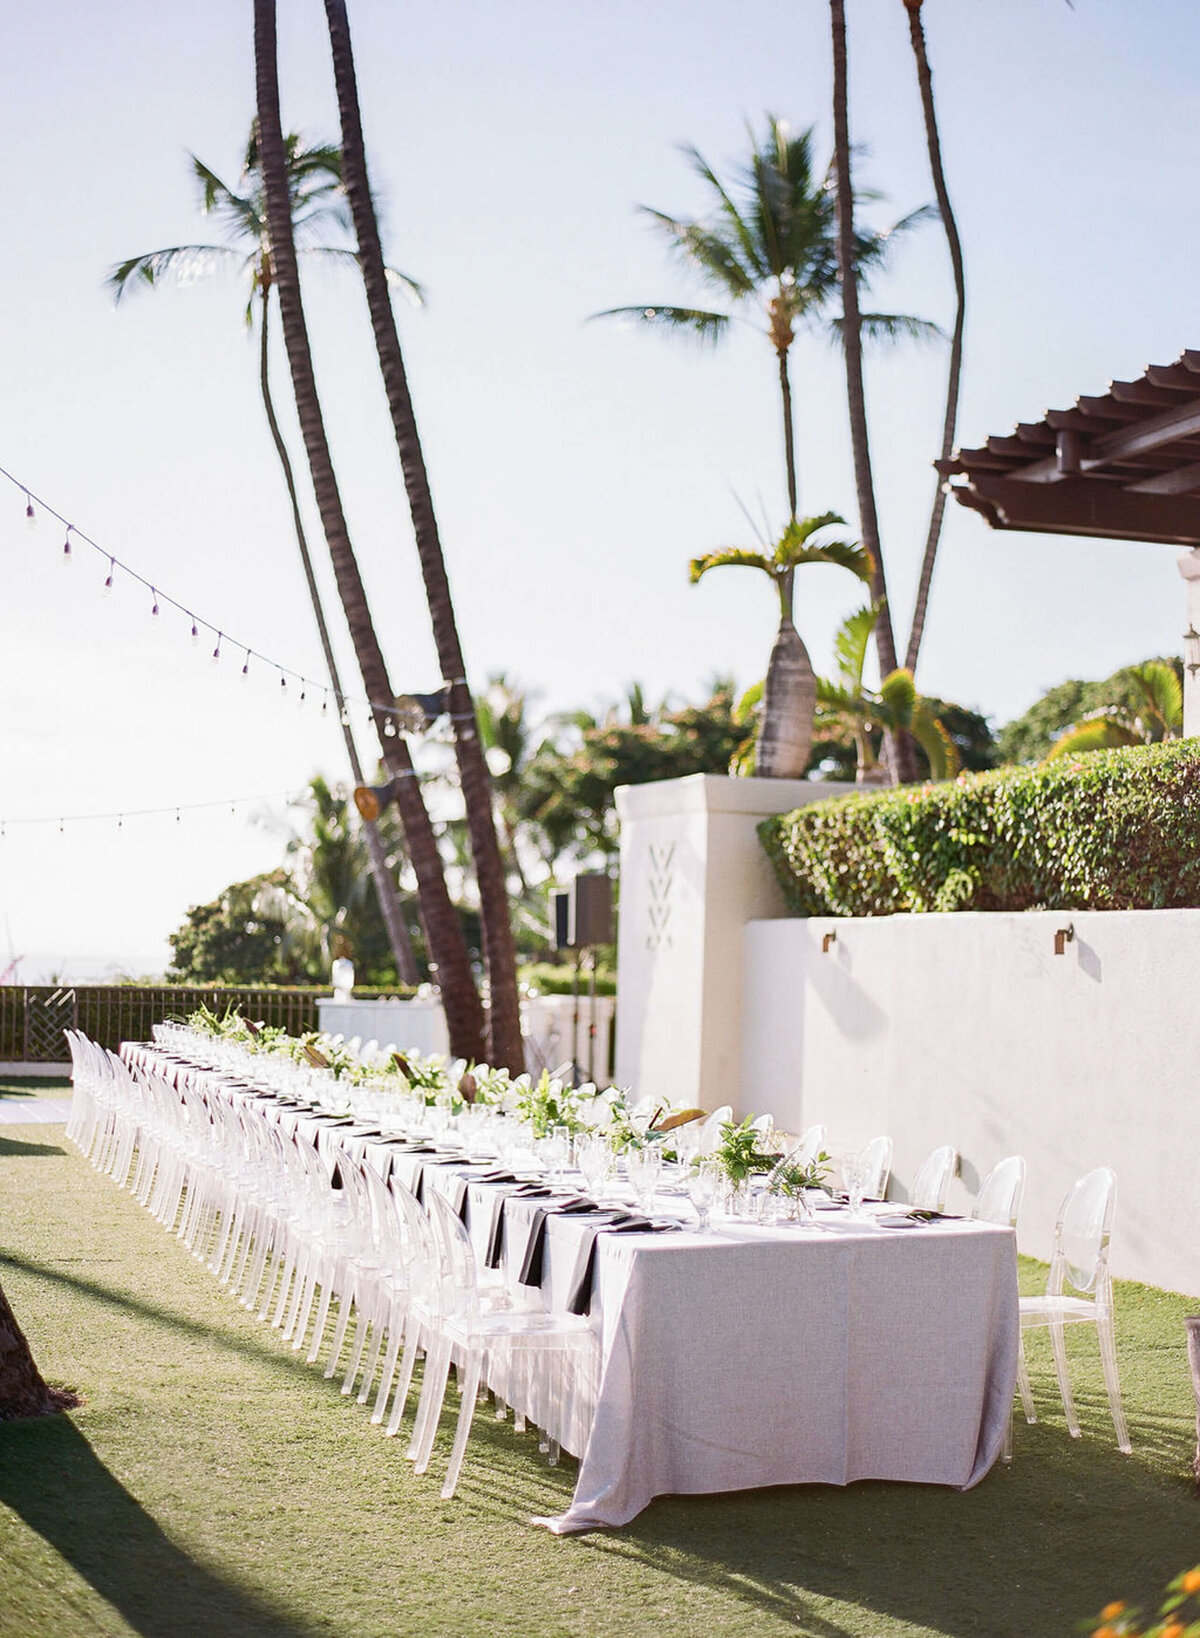 maui-hawaii-wedding-clay-austin-photography-24